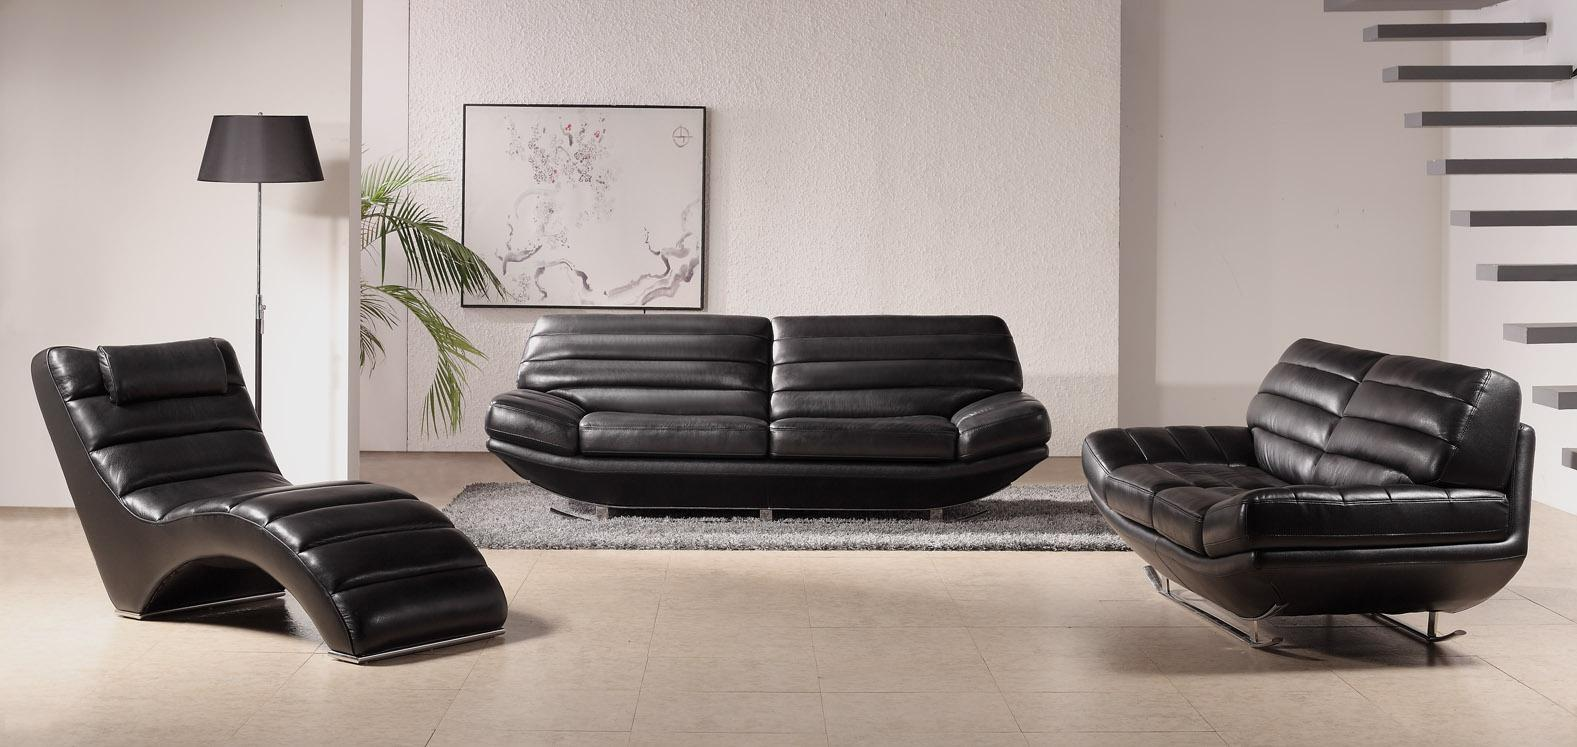 Know about types of couches and sofas my decorative for Living room coach